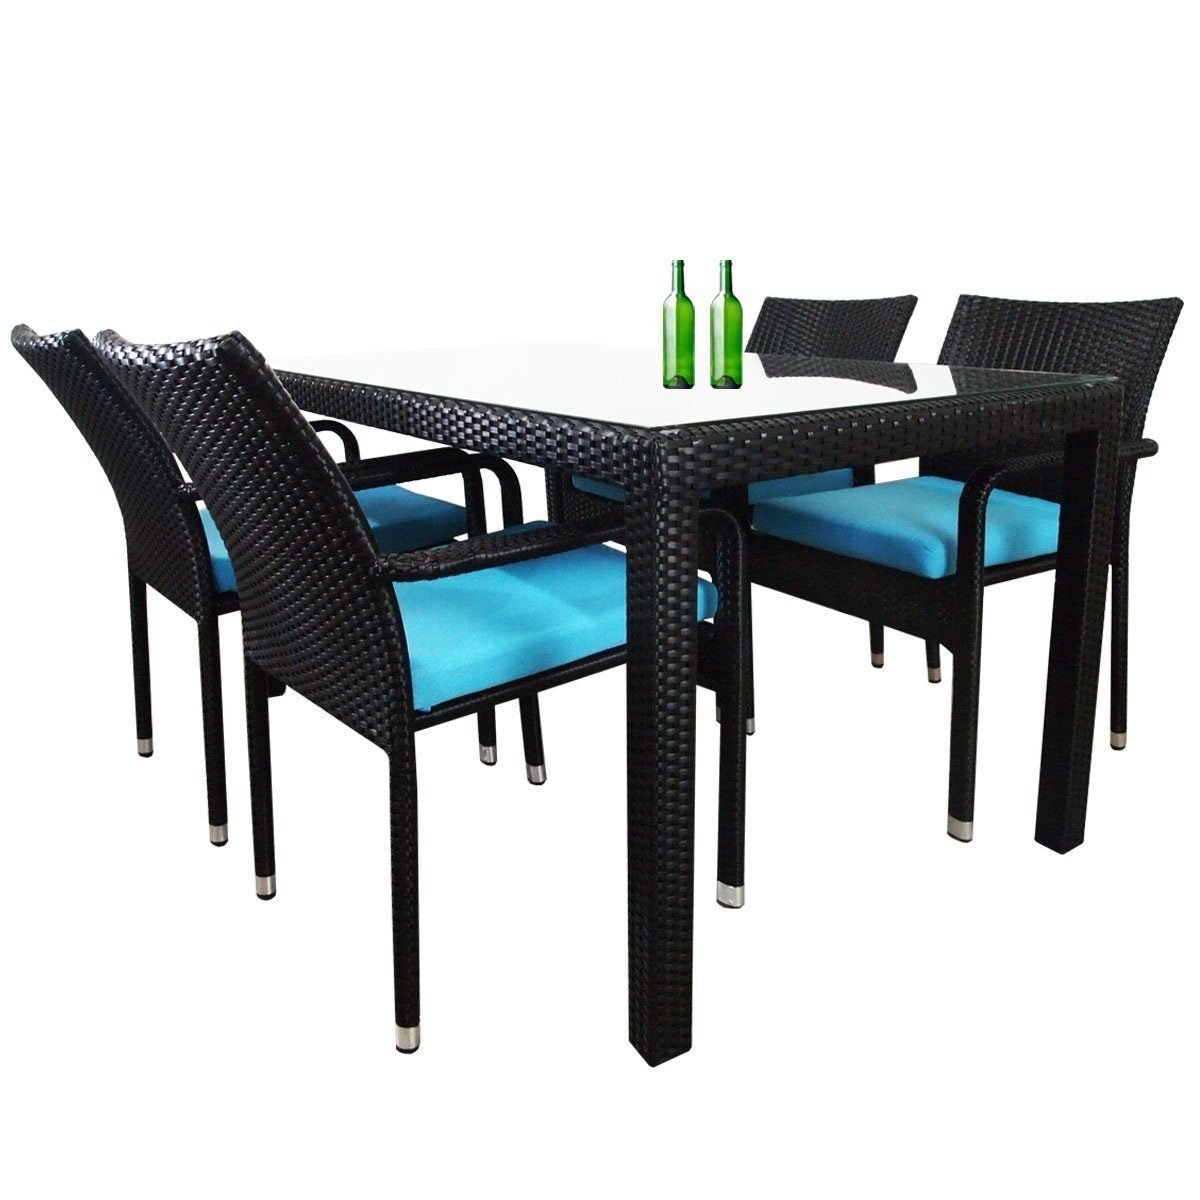 Boulevard 4 Chair Dining Set, Blue Cushions